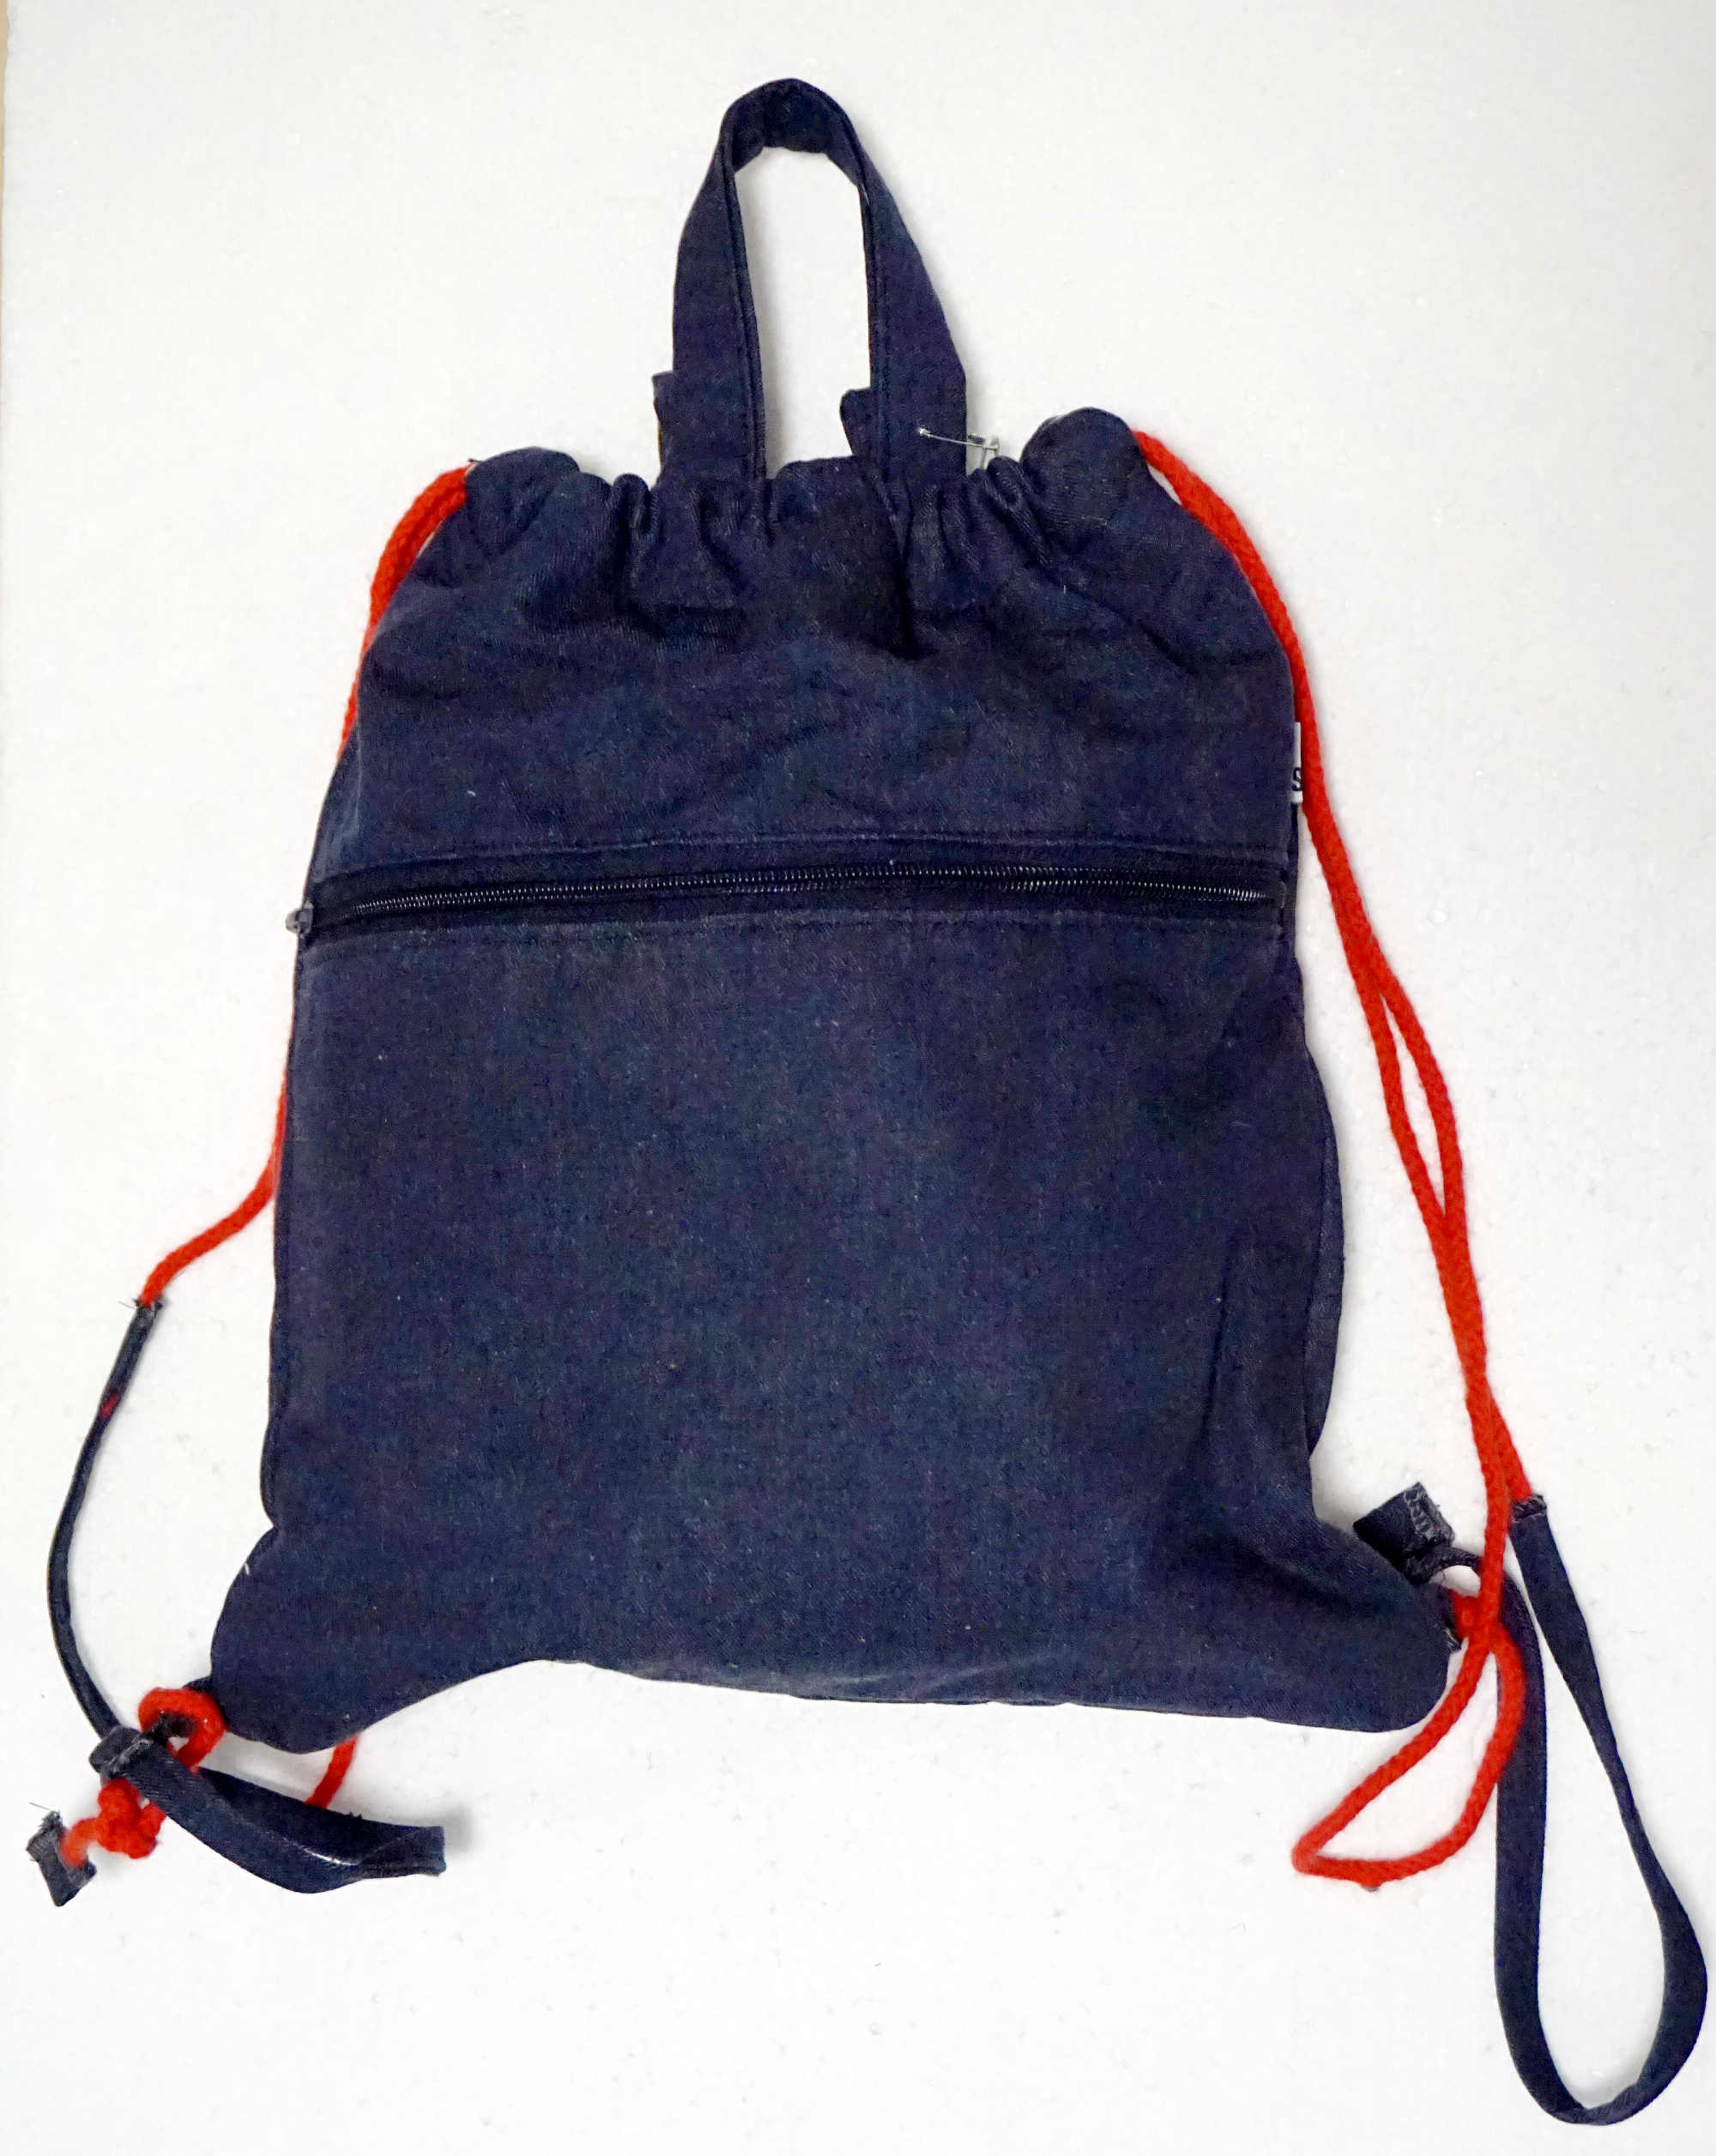 backpack-bag in denim